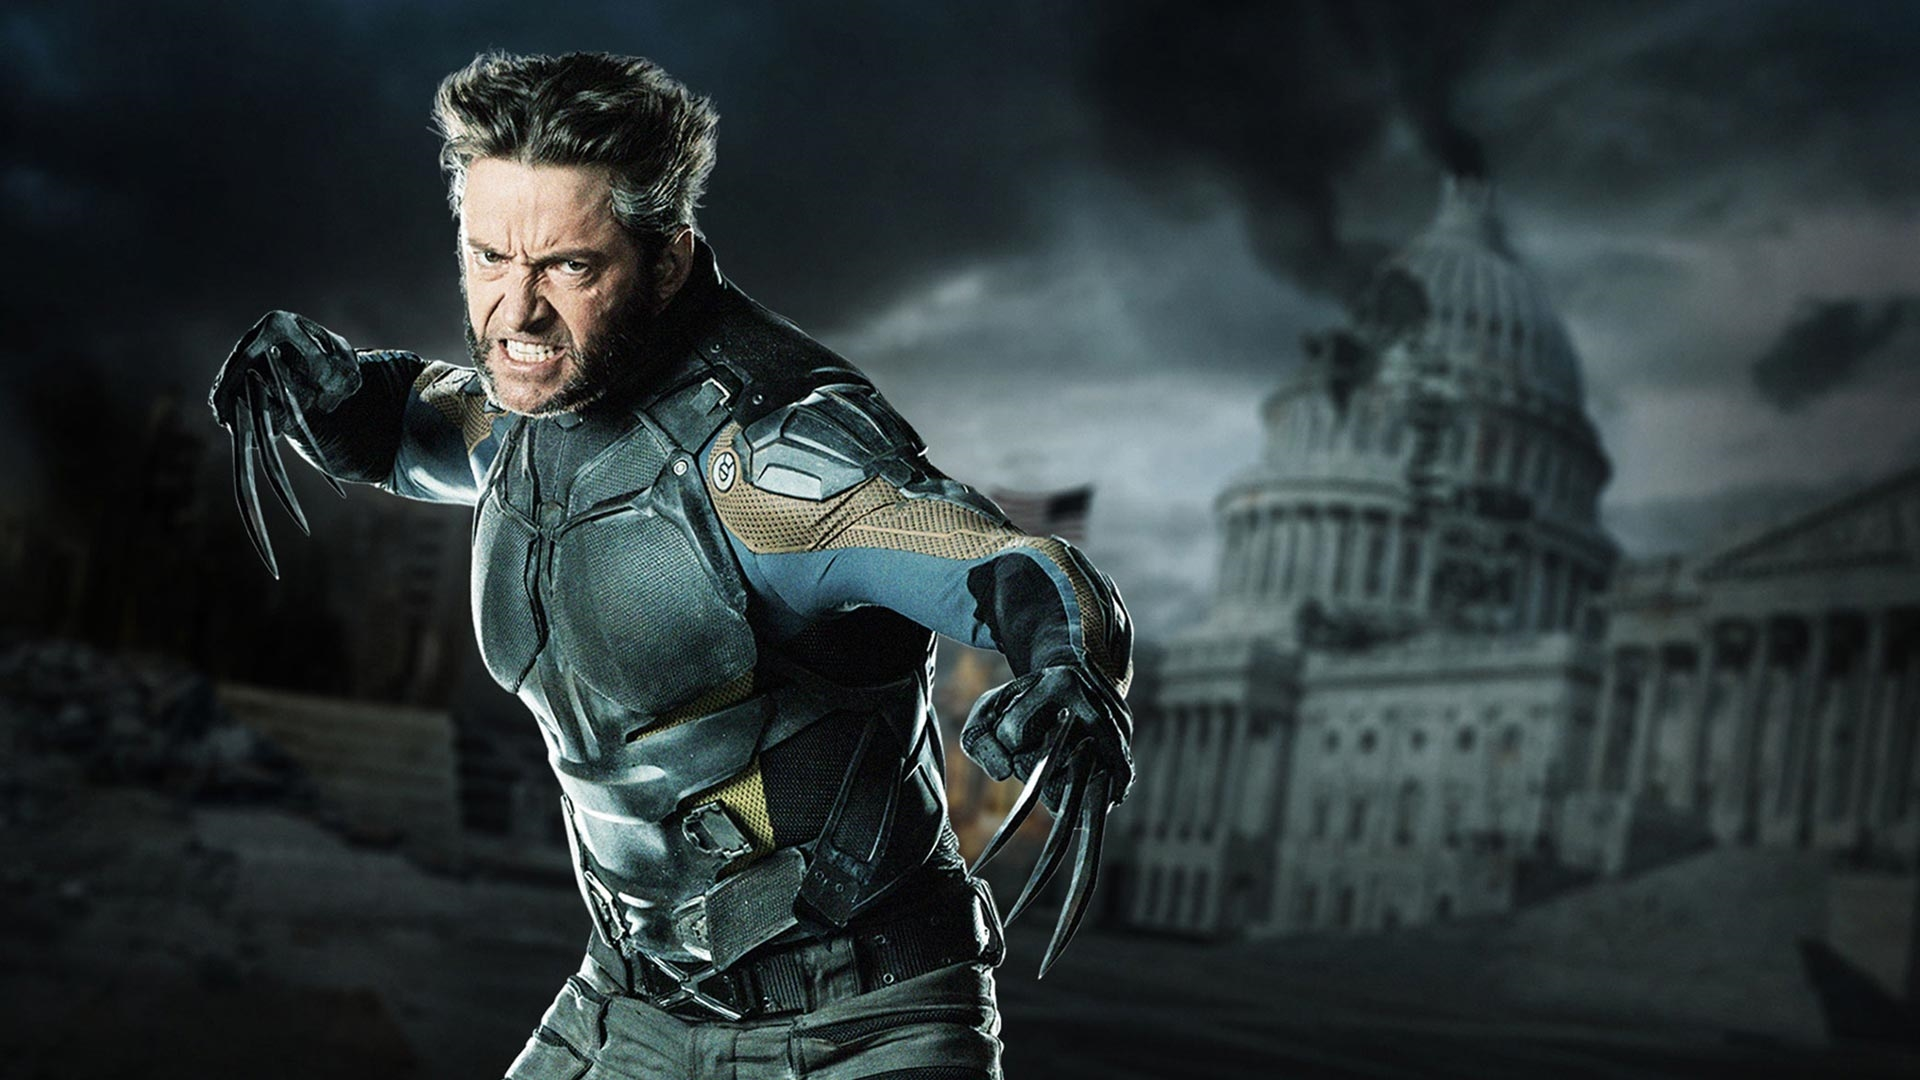 wolverine x men days of future past wallpaper hd marvel